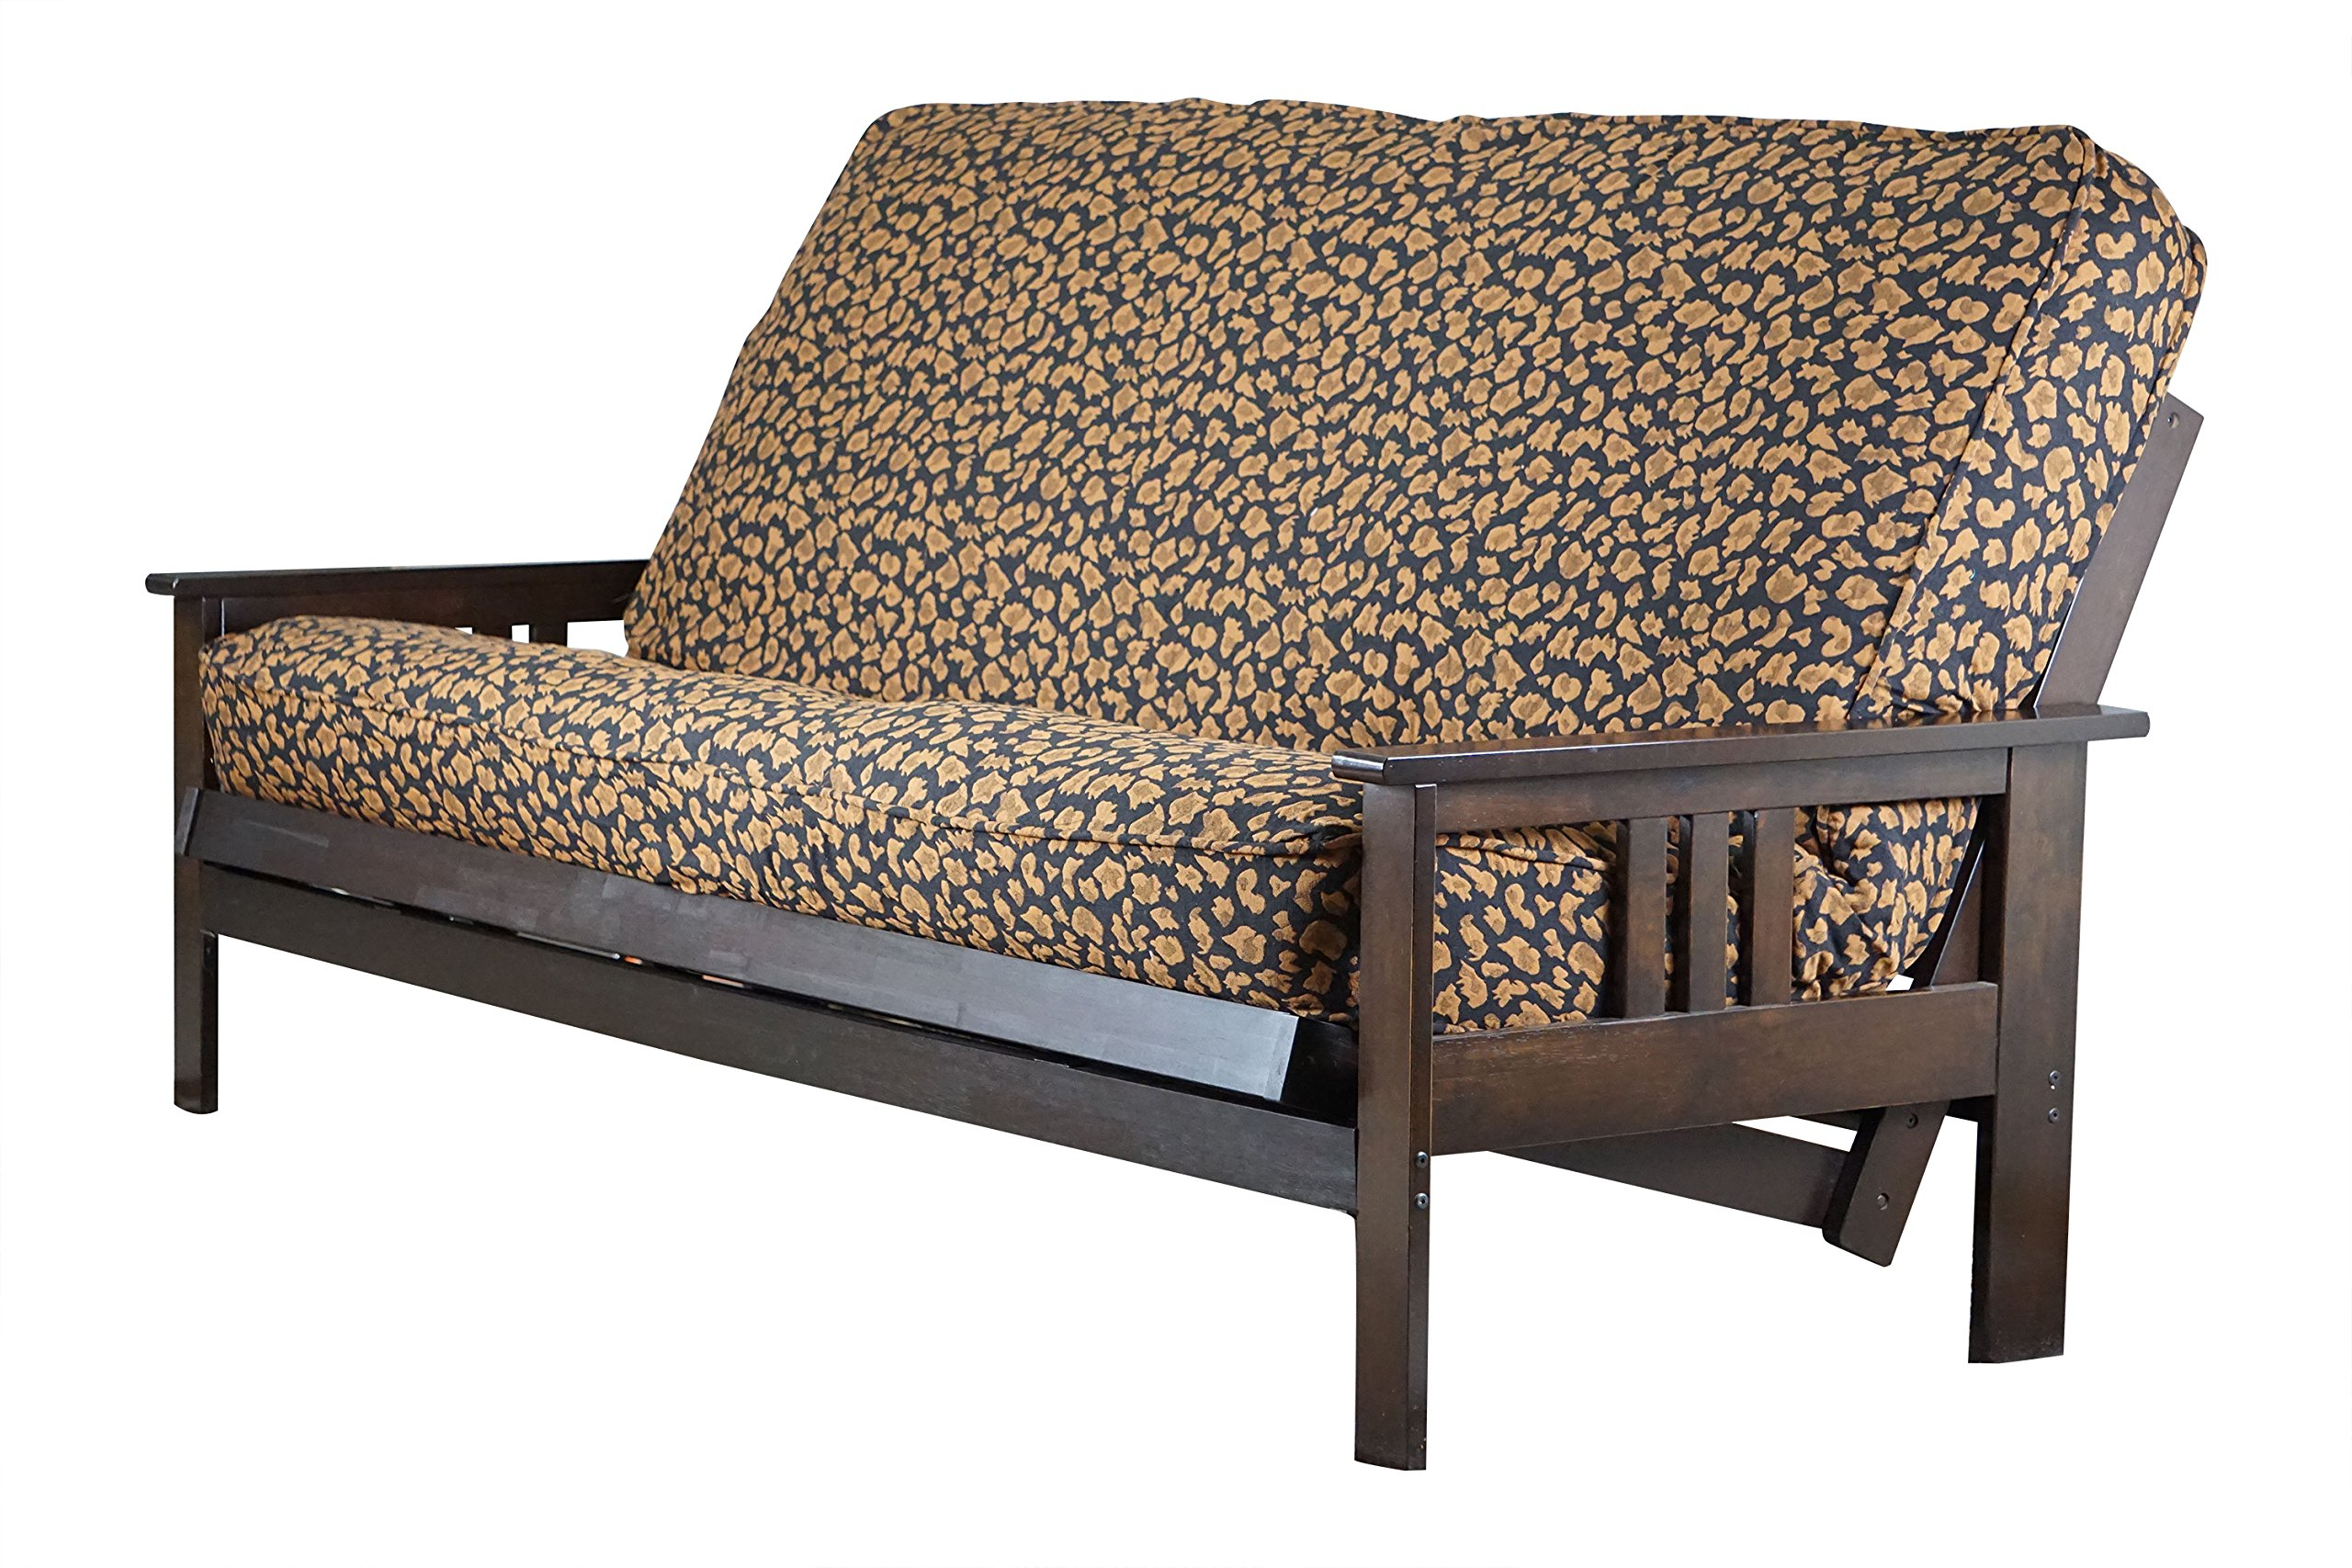 Java Futon Wood ''Frame and Mattress'' 8 Inch Innerspring with ''Removable Cover'' Sofa Bed Full Size (Frame w/ Animal Print Fabric Mattress)